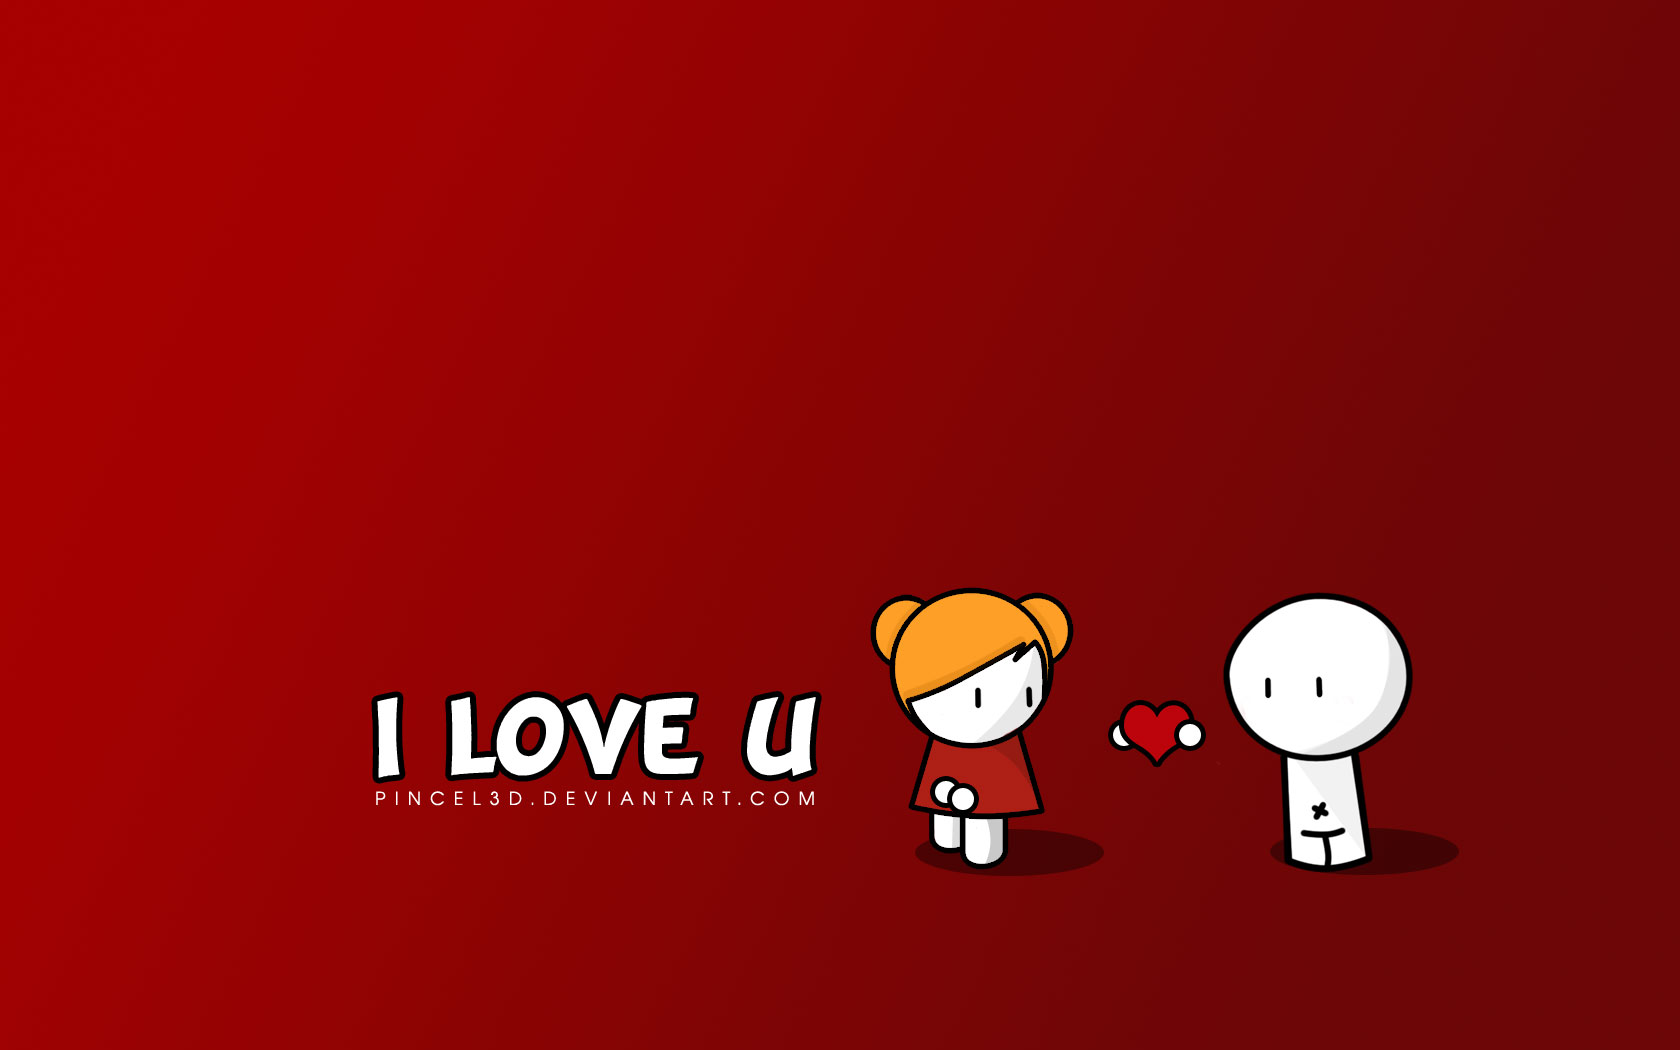 1680x1050 I Love U desktop PC and Mac wallpaper 1680x1050